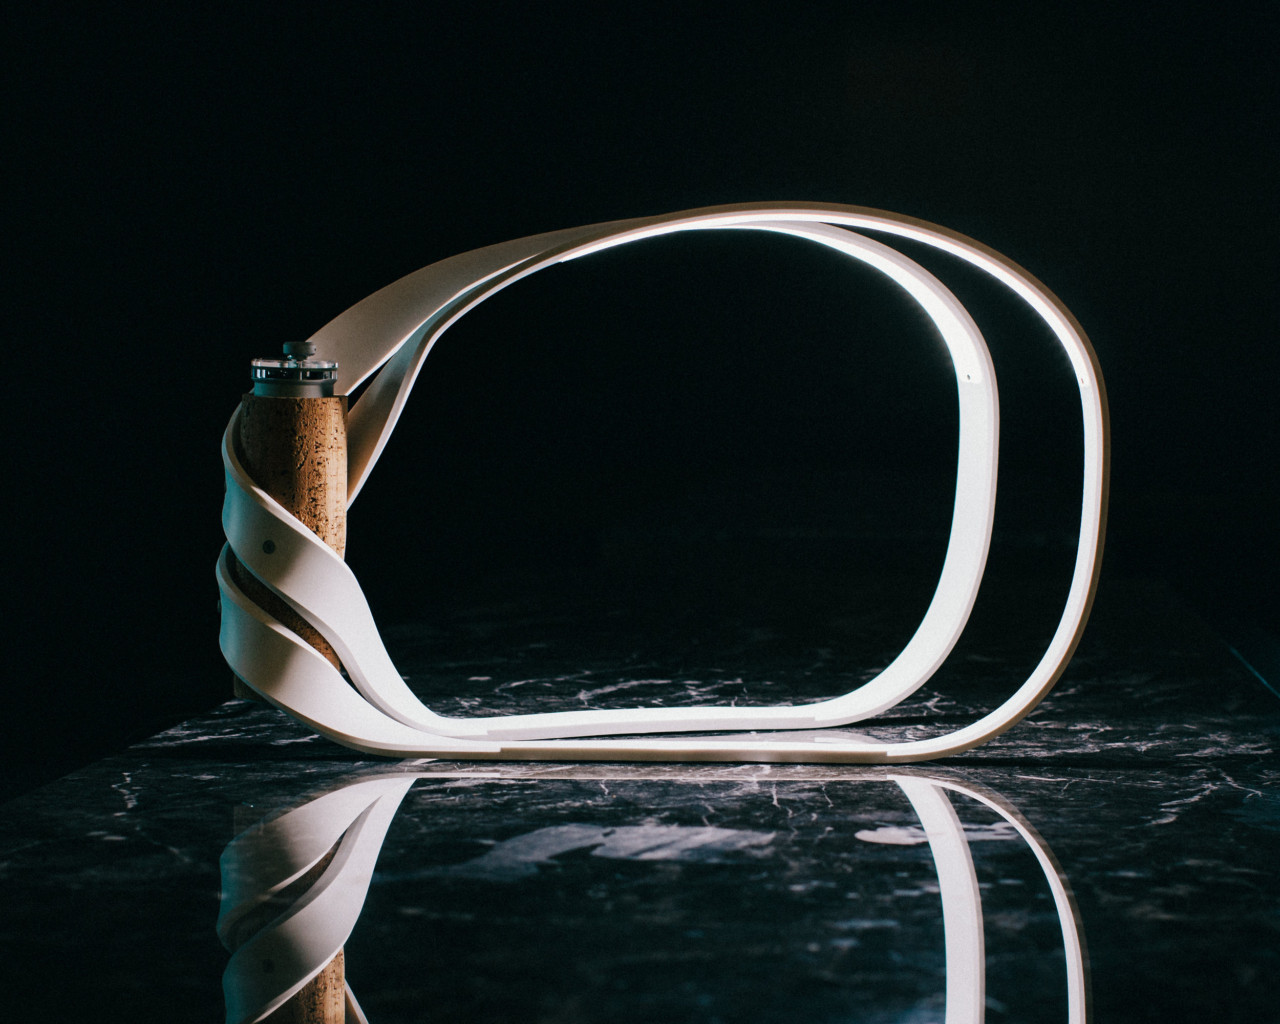 The Classic Möbius Brings a Unique Twist to Lighting